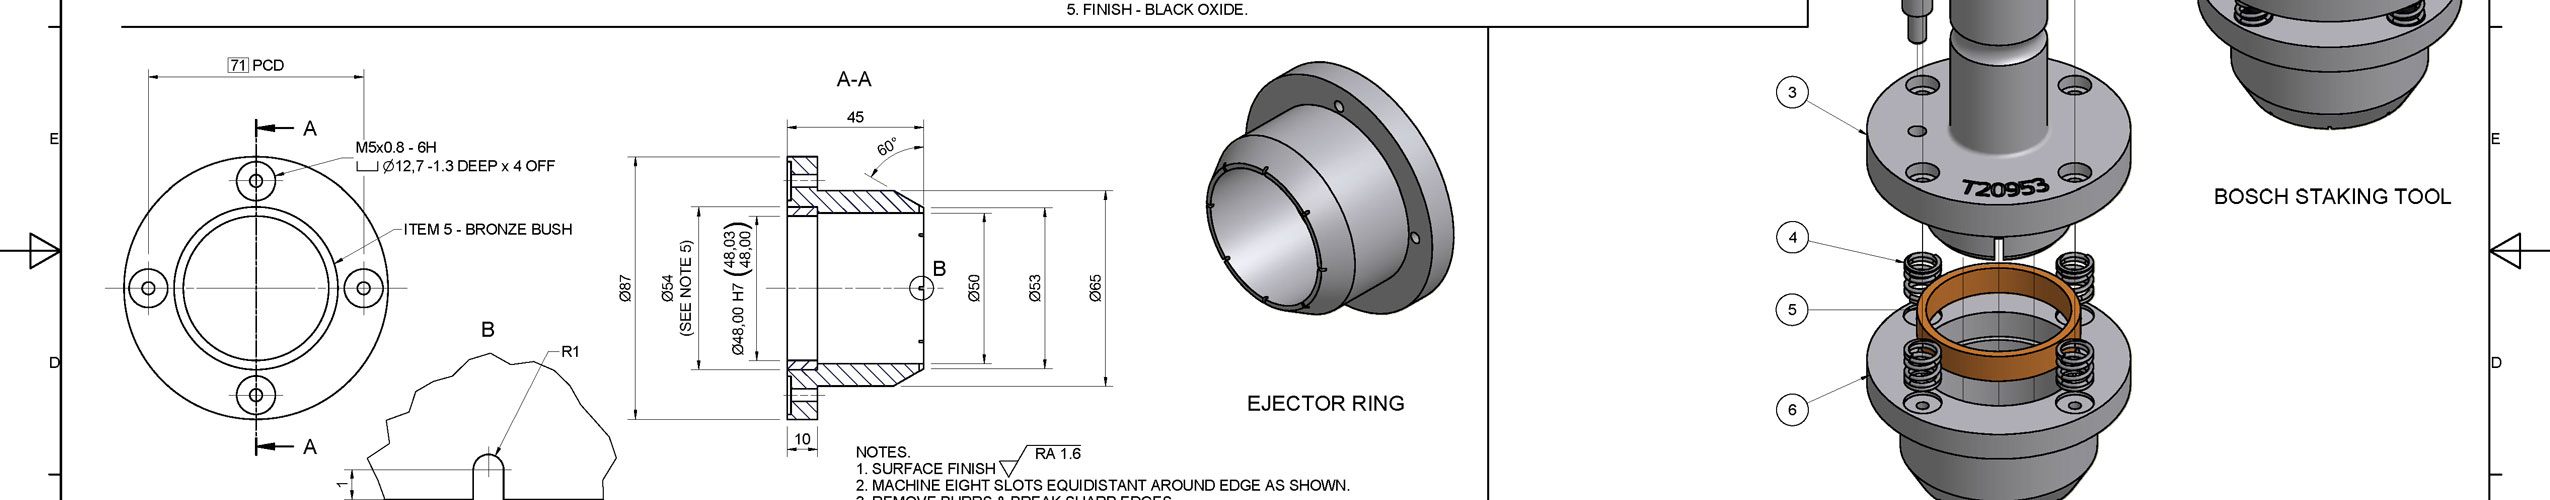 Consulting service provider delivering Engineering Drawings to industry. To BS 8888.